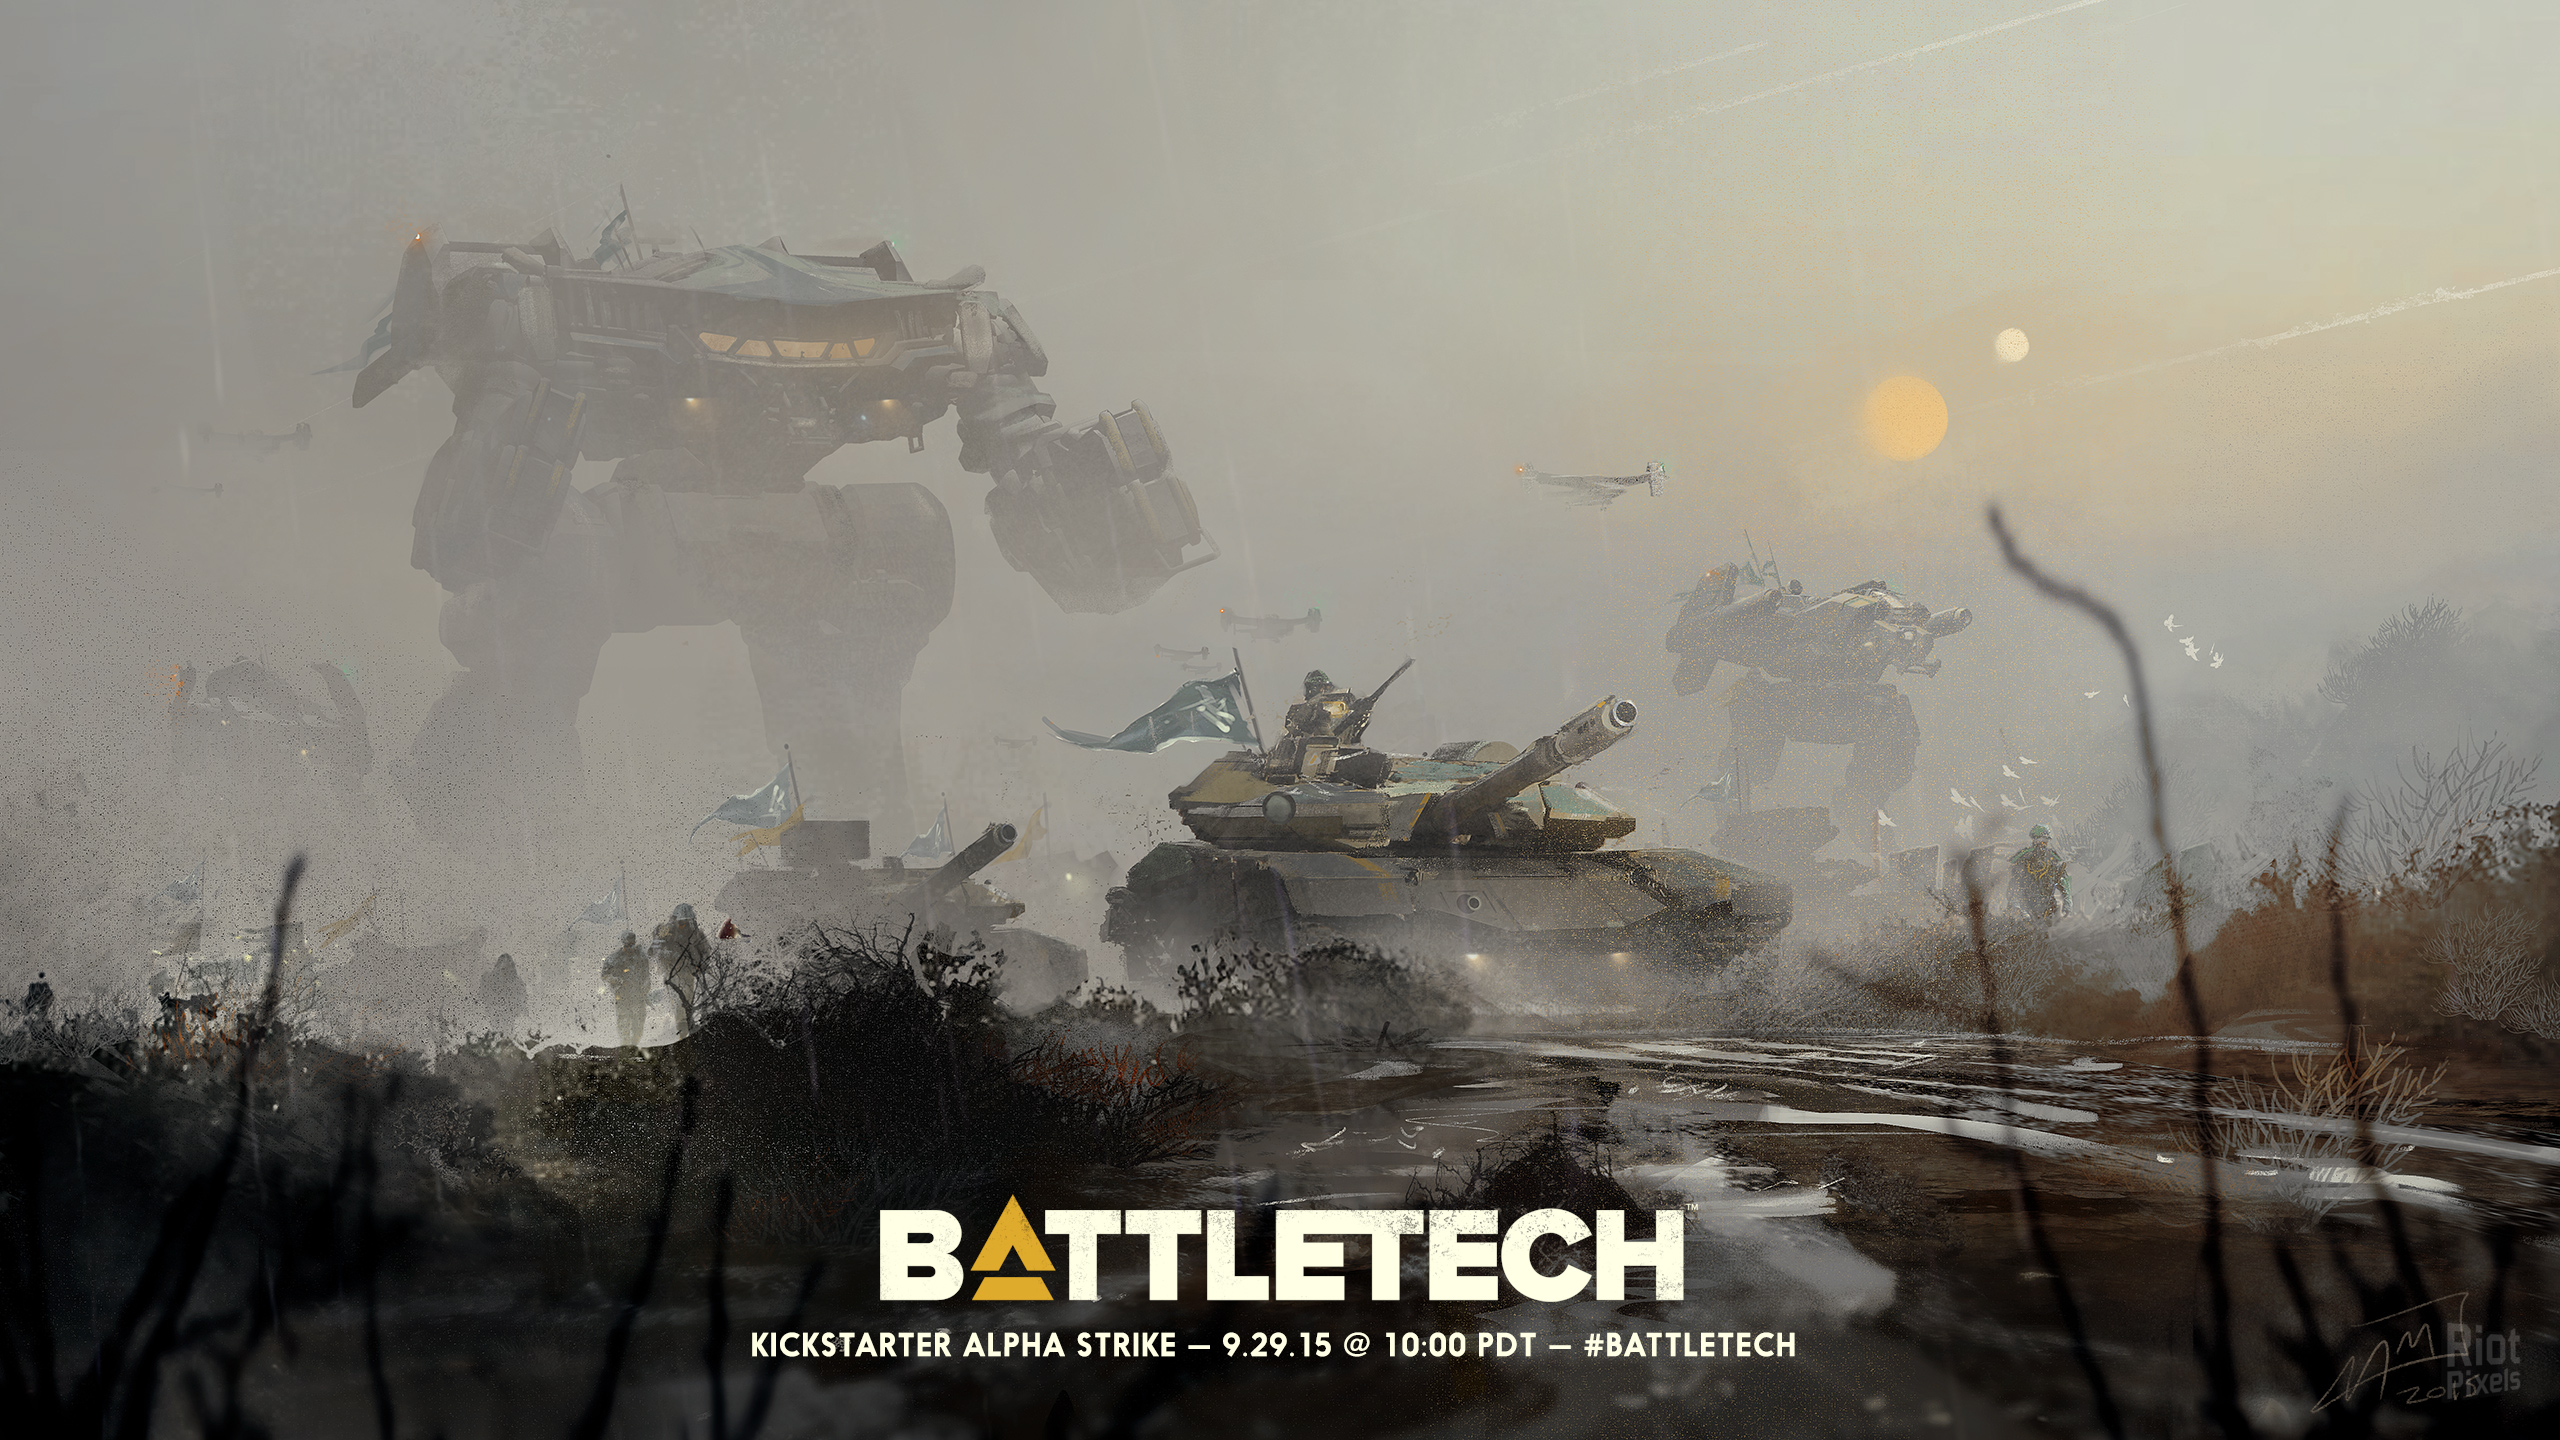 Battletech Blackjack Upgrade Free Download - Peerhub